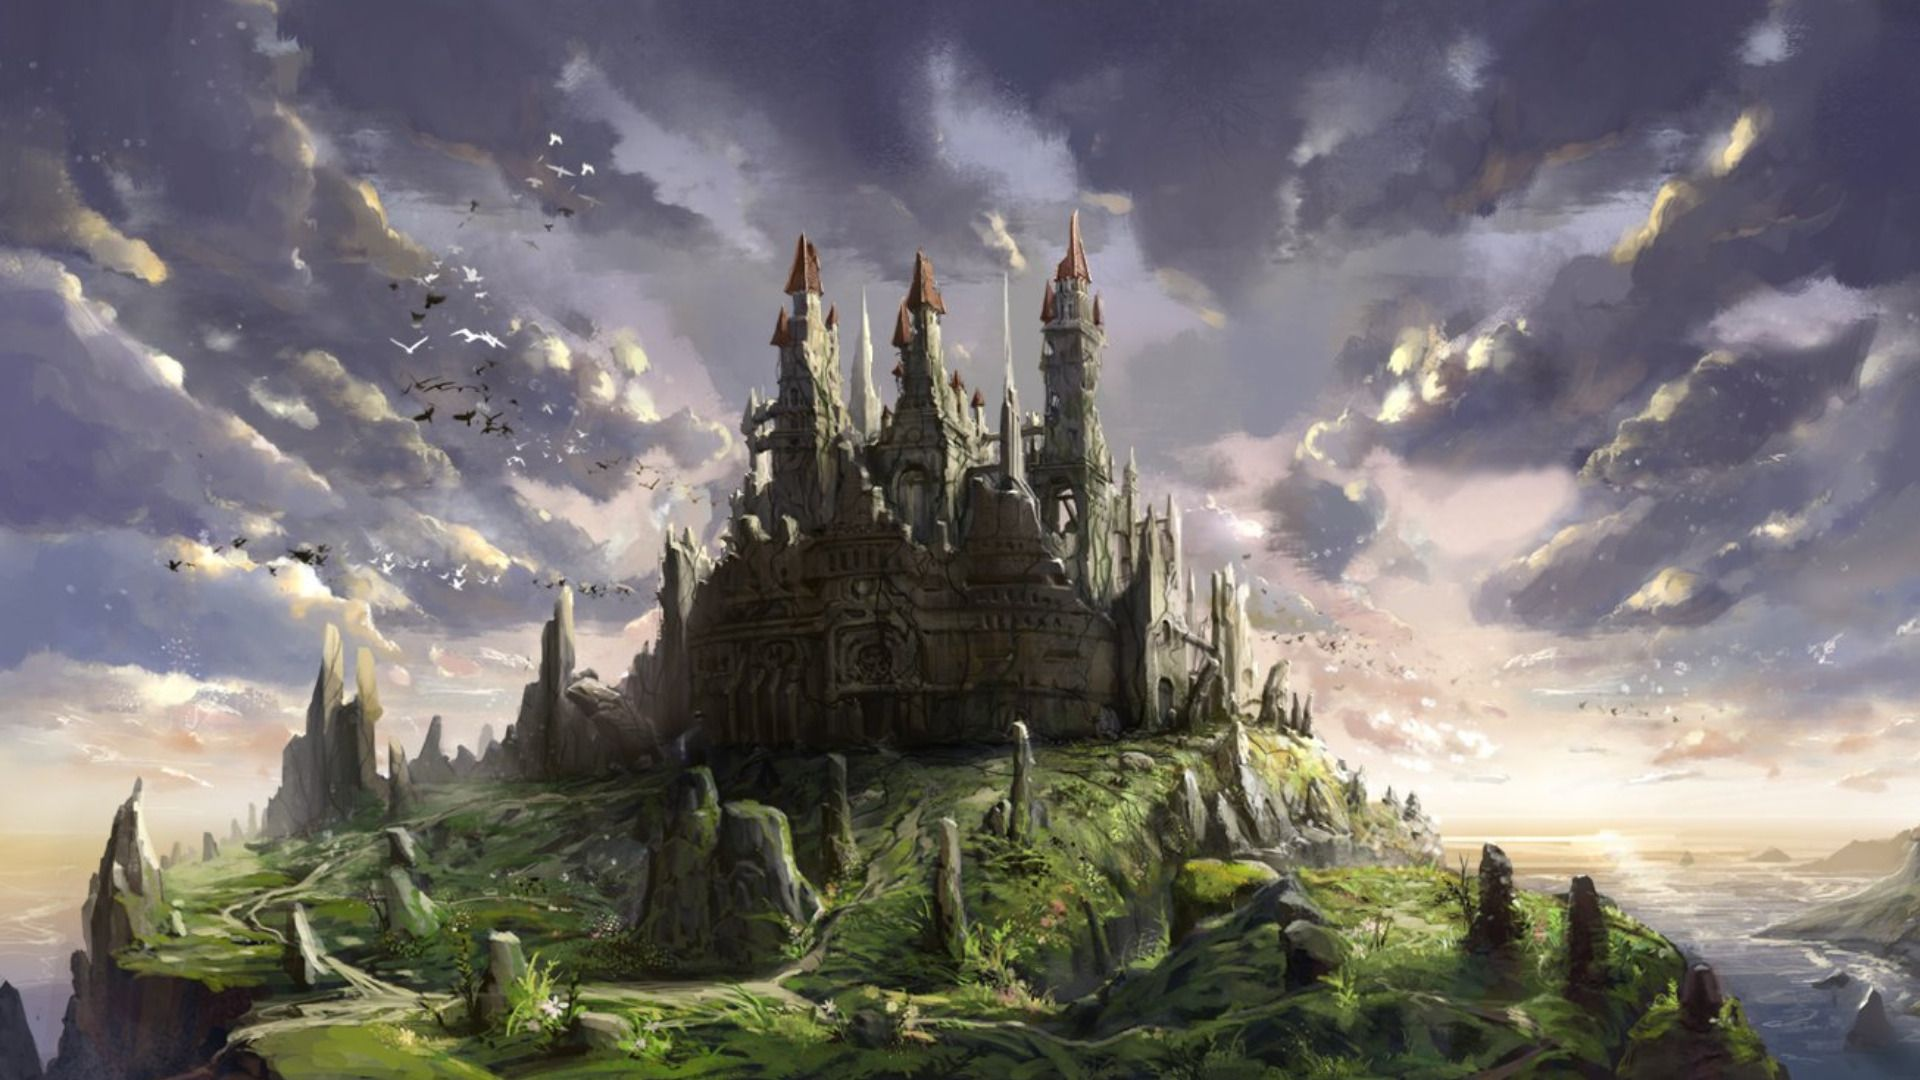 Fantasy castle wallpaper free with wallpapers wide resolution fantasy castle wallpaper free with wallpapers wide resolution 1920x1080 px 41851 kb voltagebd Choice Image